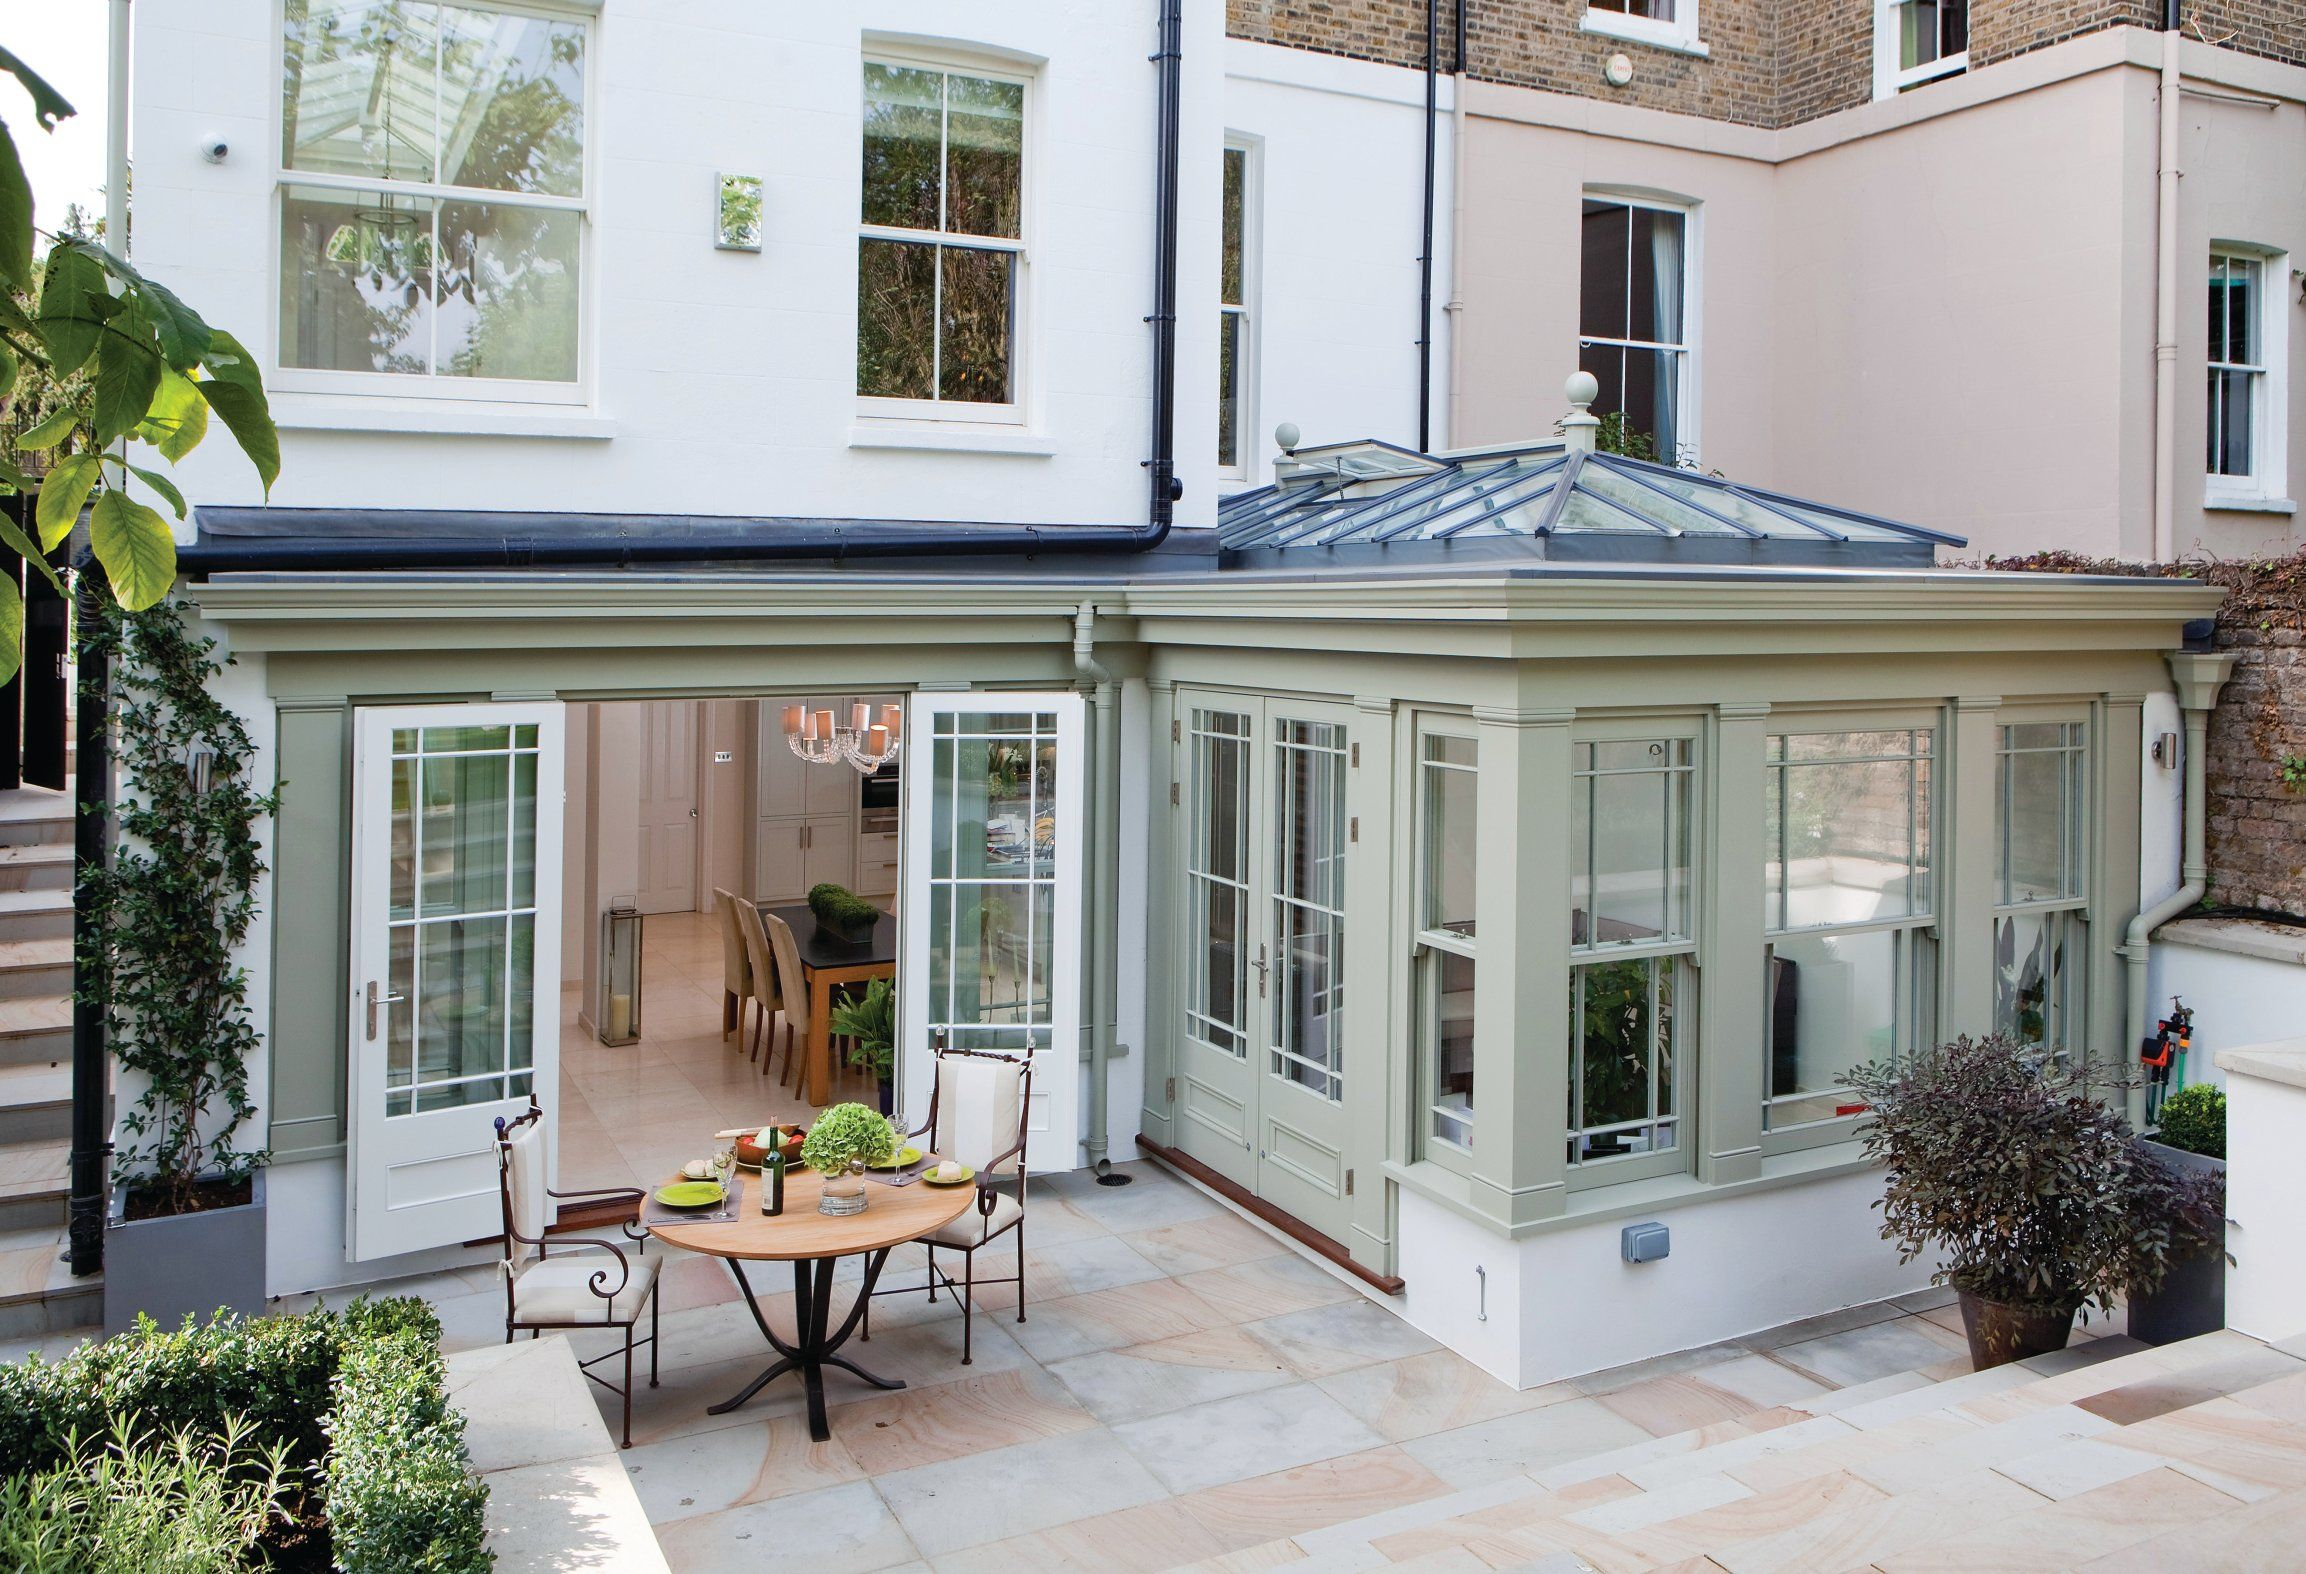 The best conservatories in pictures conservatories for Orangery ideas uk